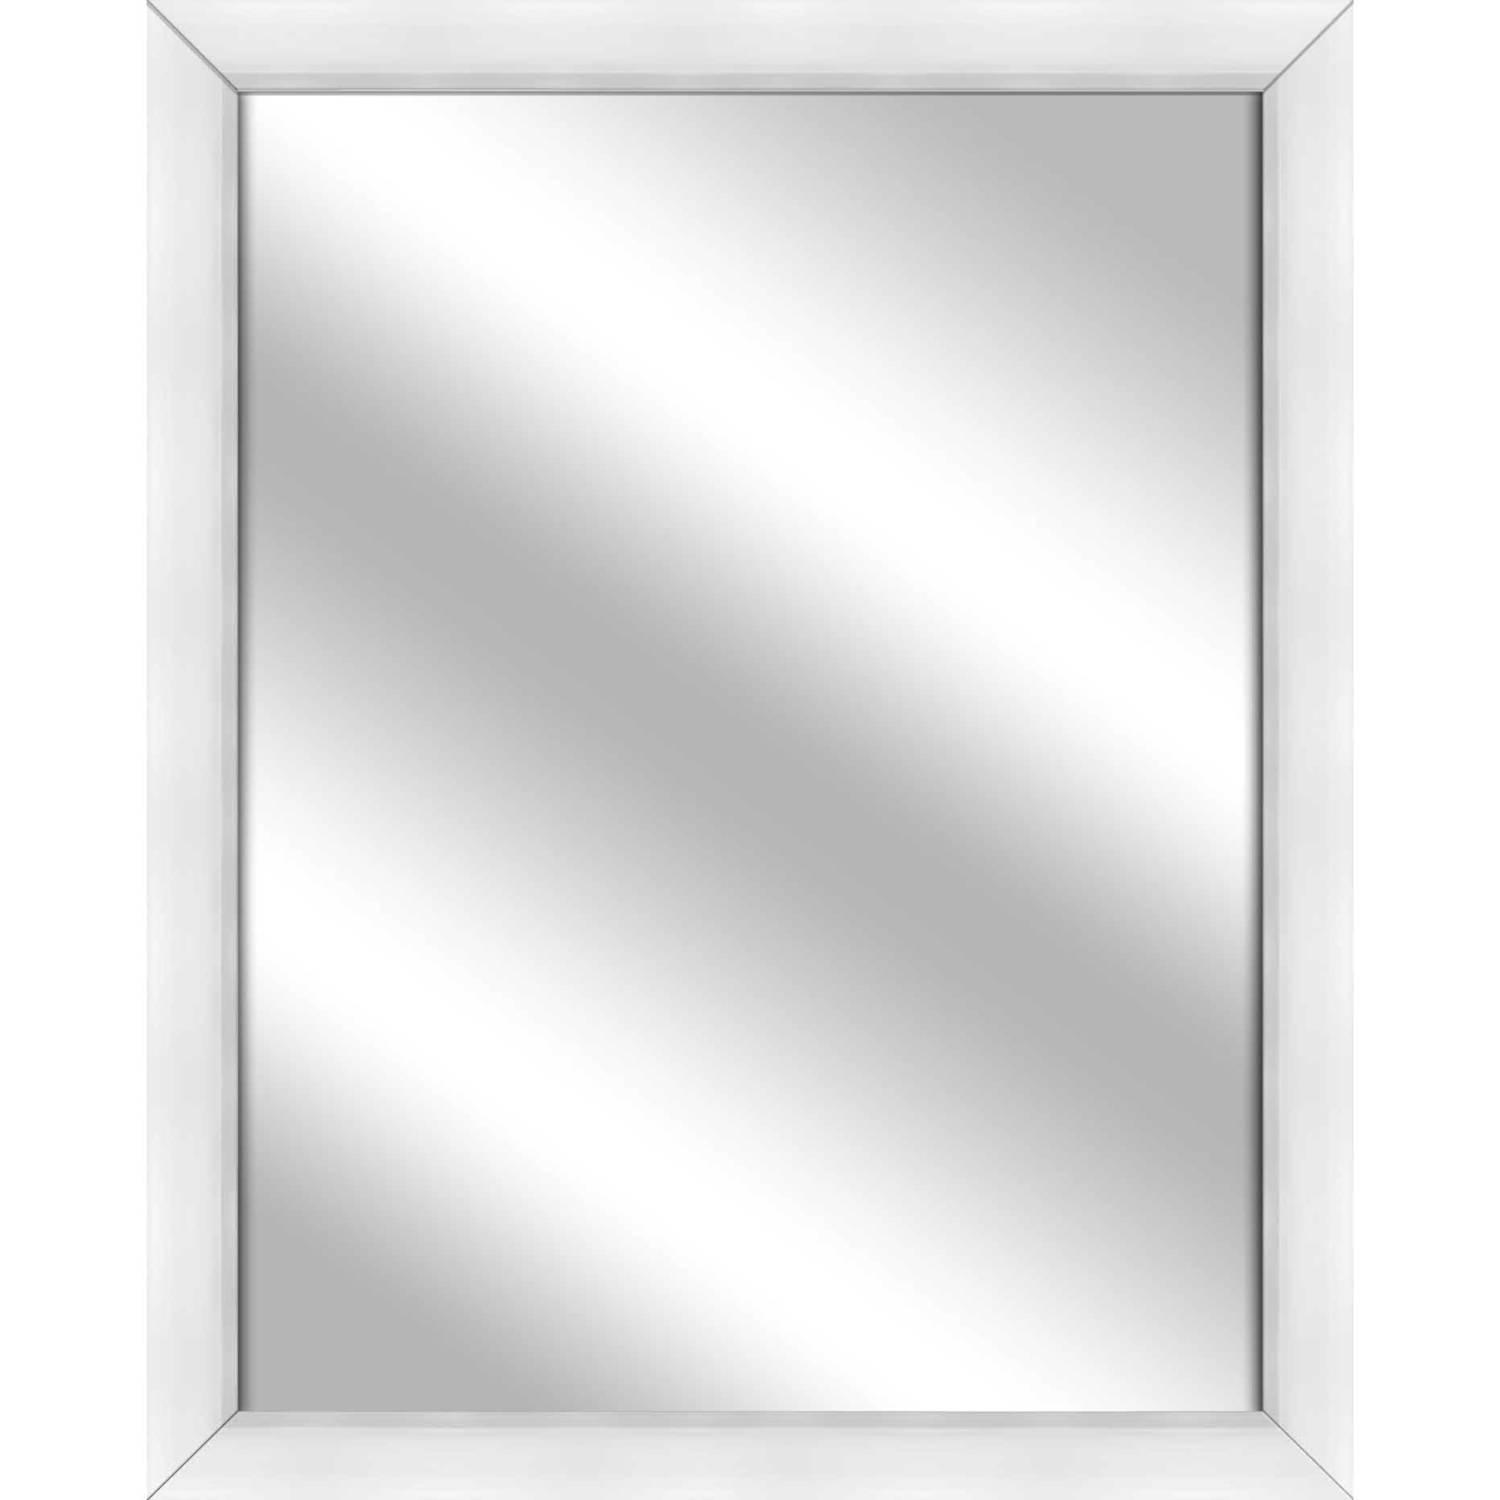 Vanity Mirror, White, 24.75x30.75 by PTM Images